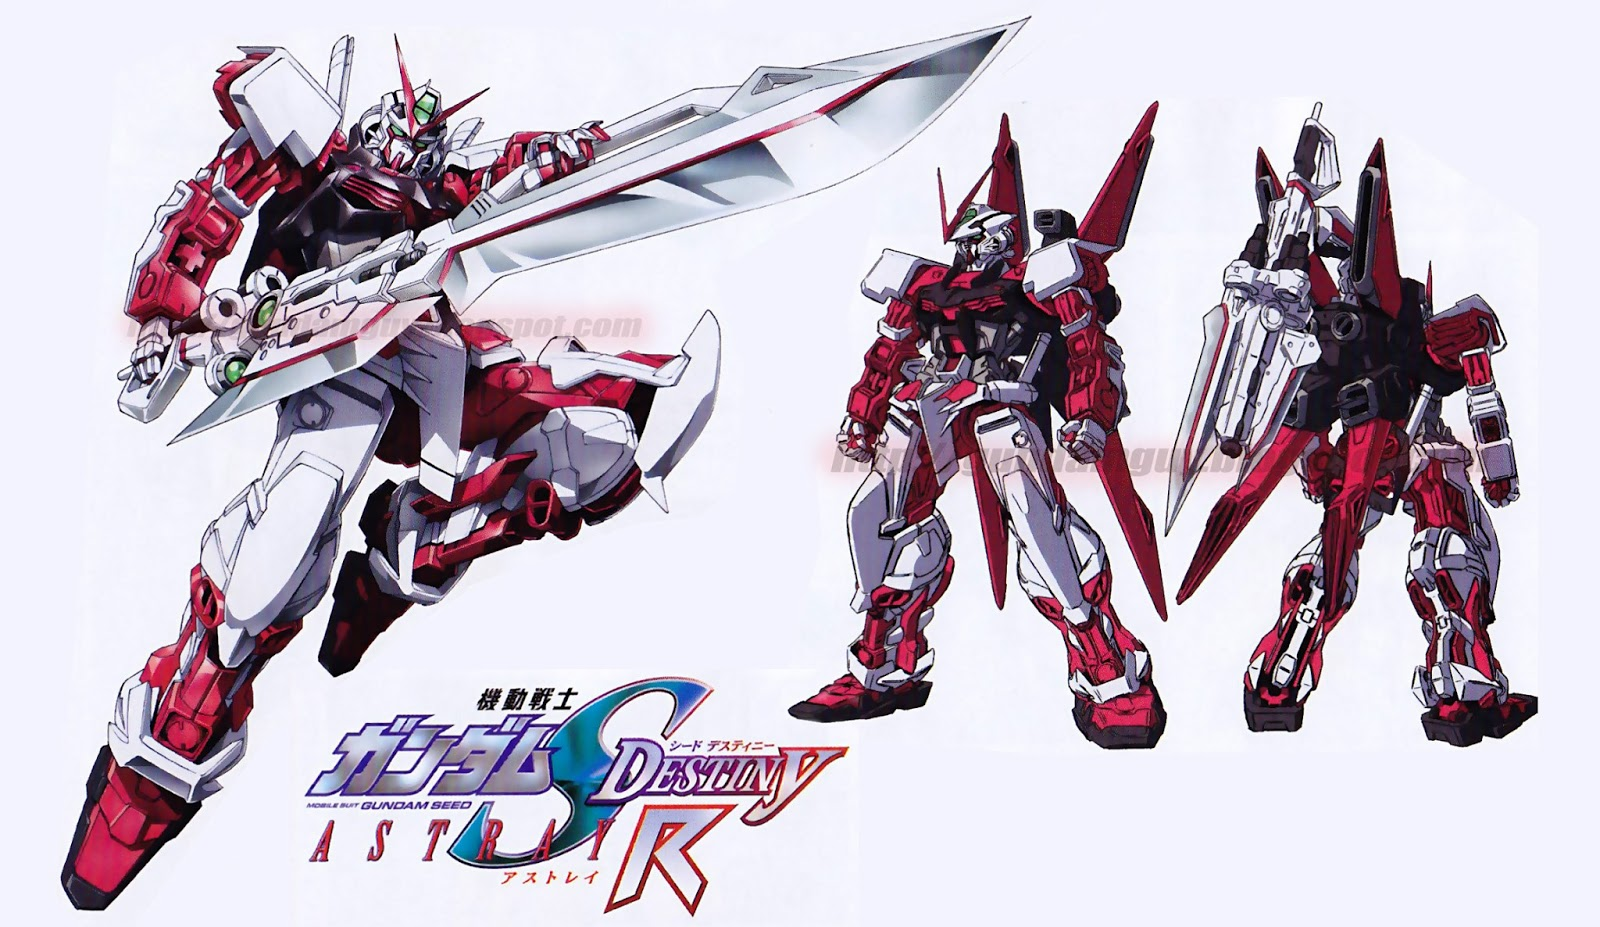 Mobile Suit Gundam Seed Destiny Complete Collection 2 Anime Legends Details